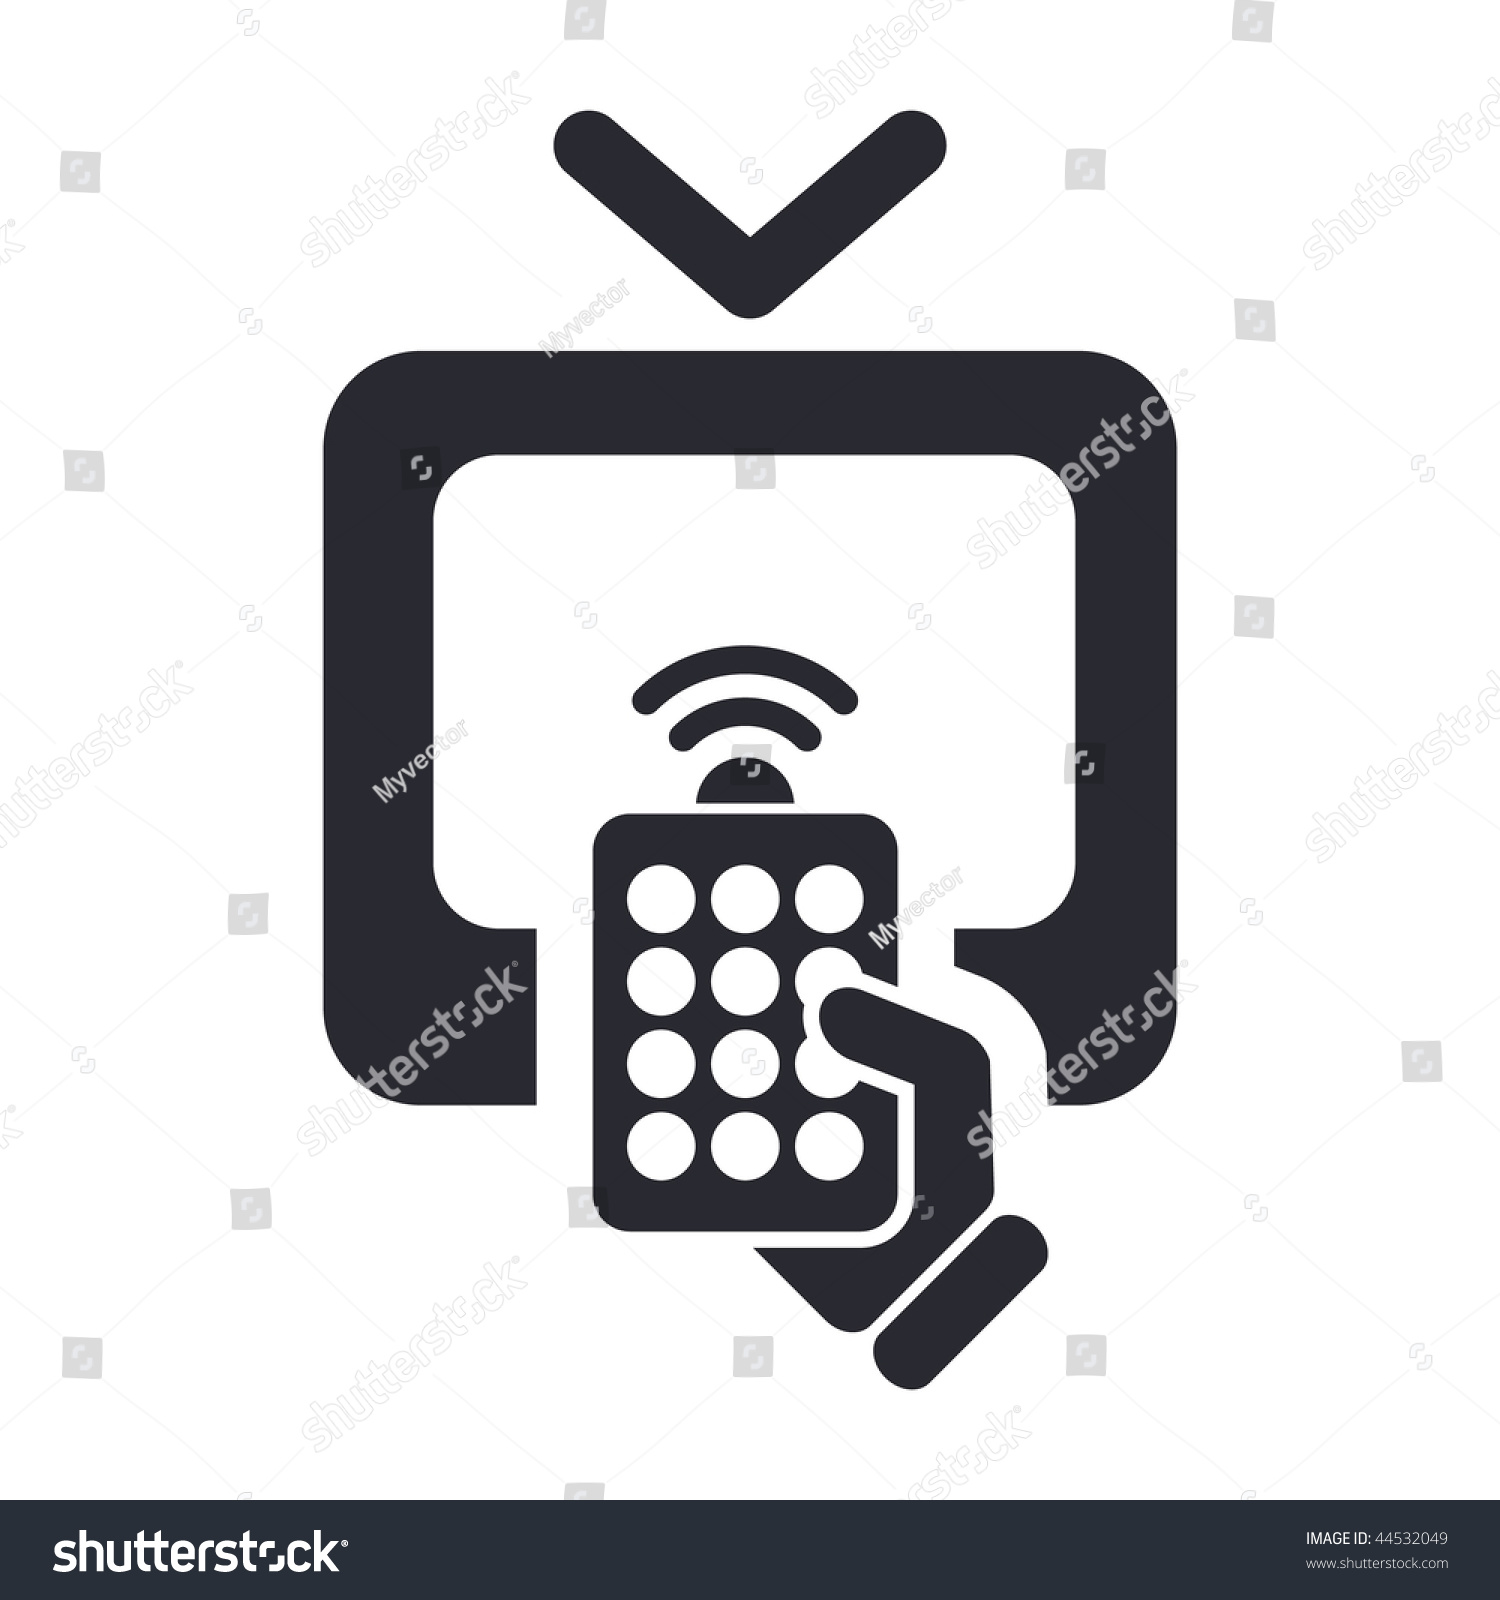 Remote Icon Stock Photos Images Pictures Shutterstock